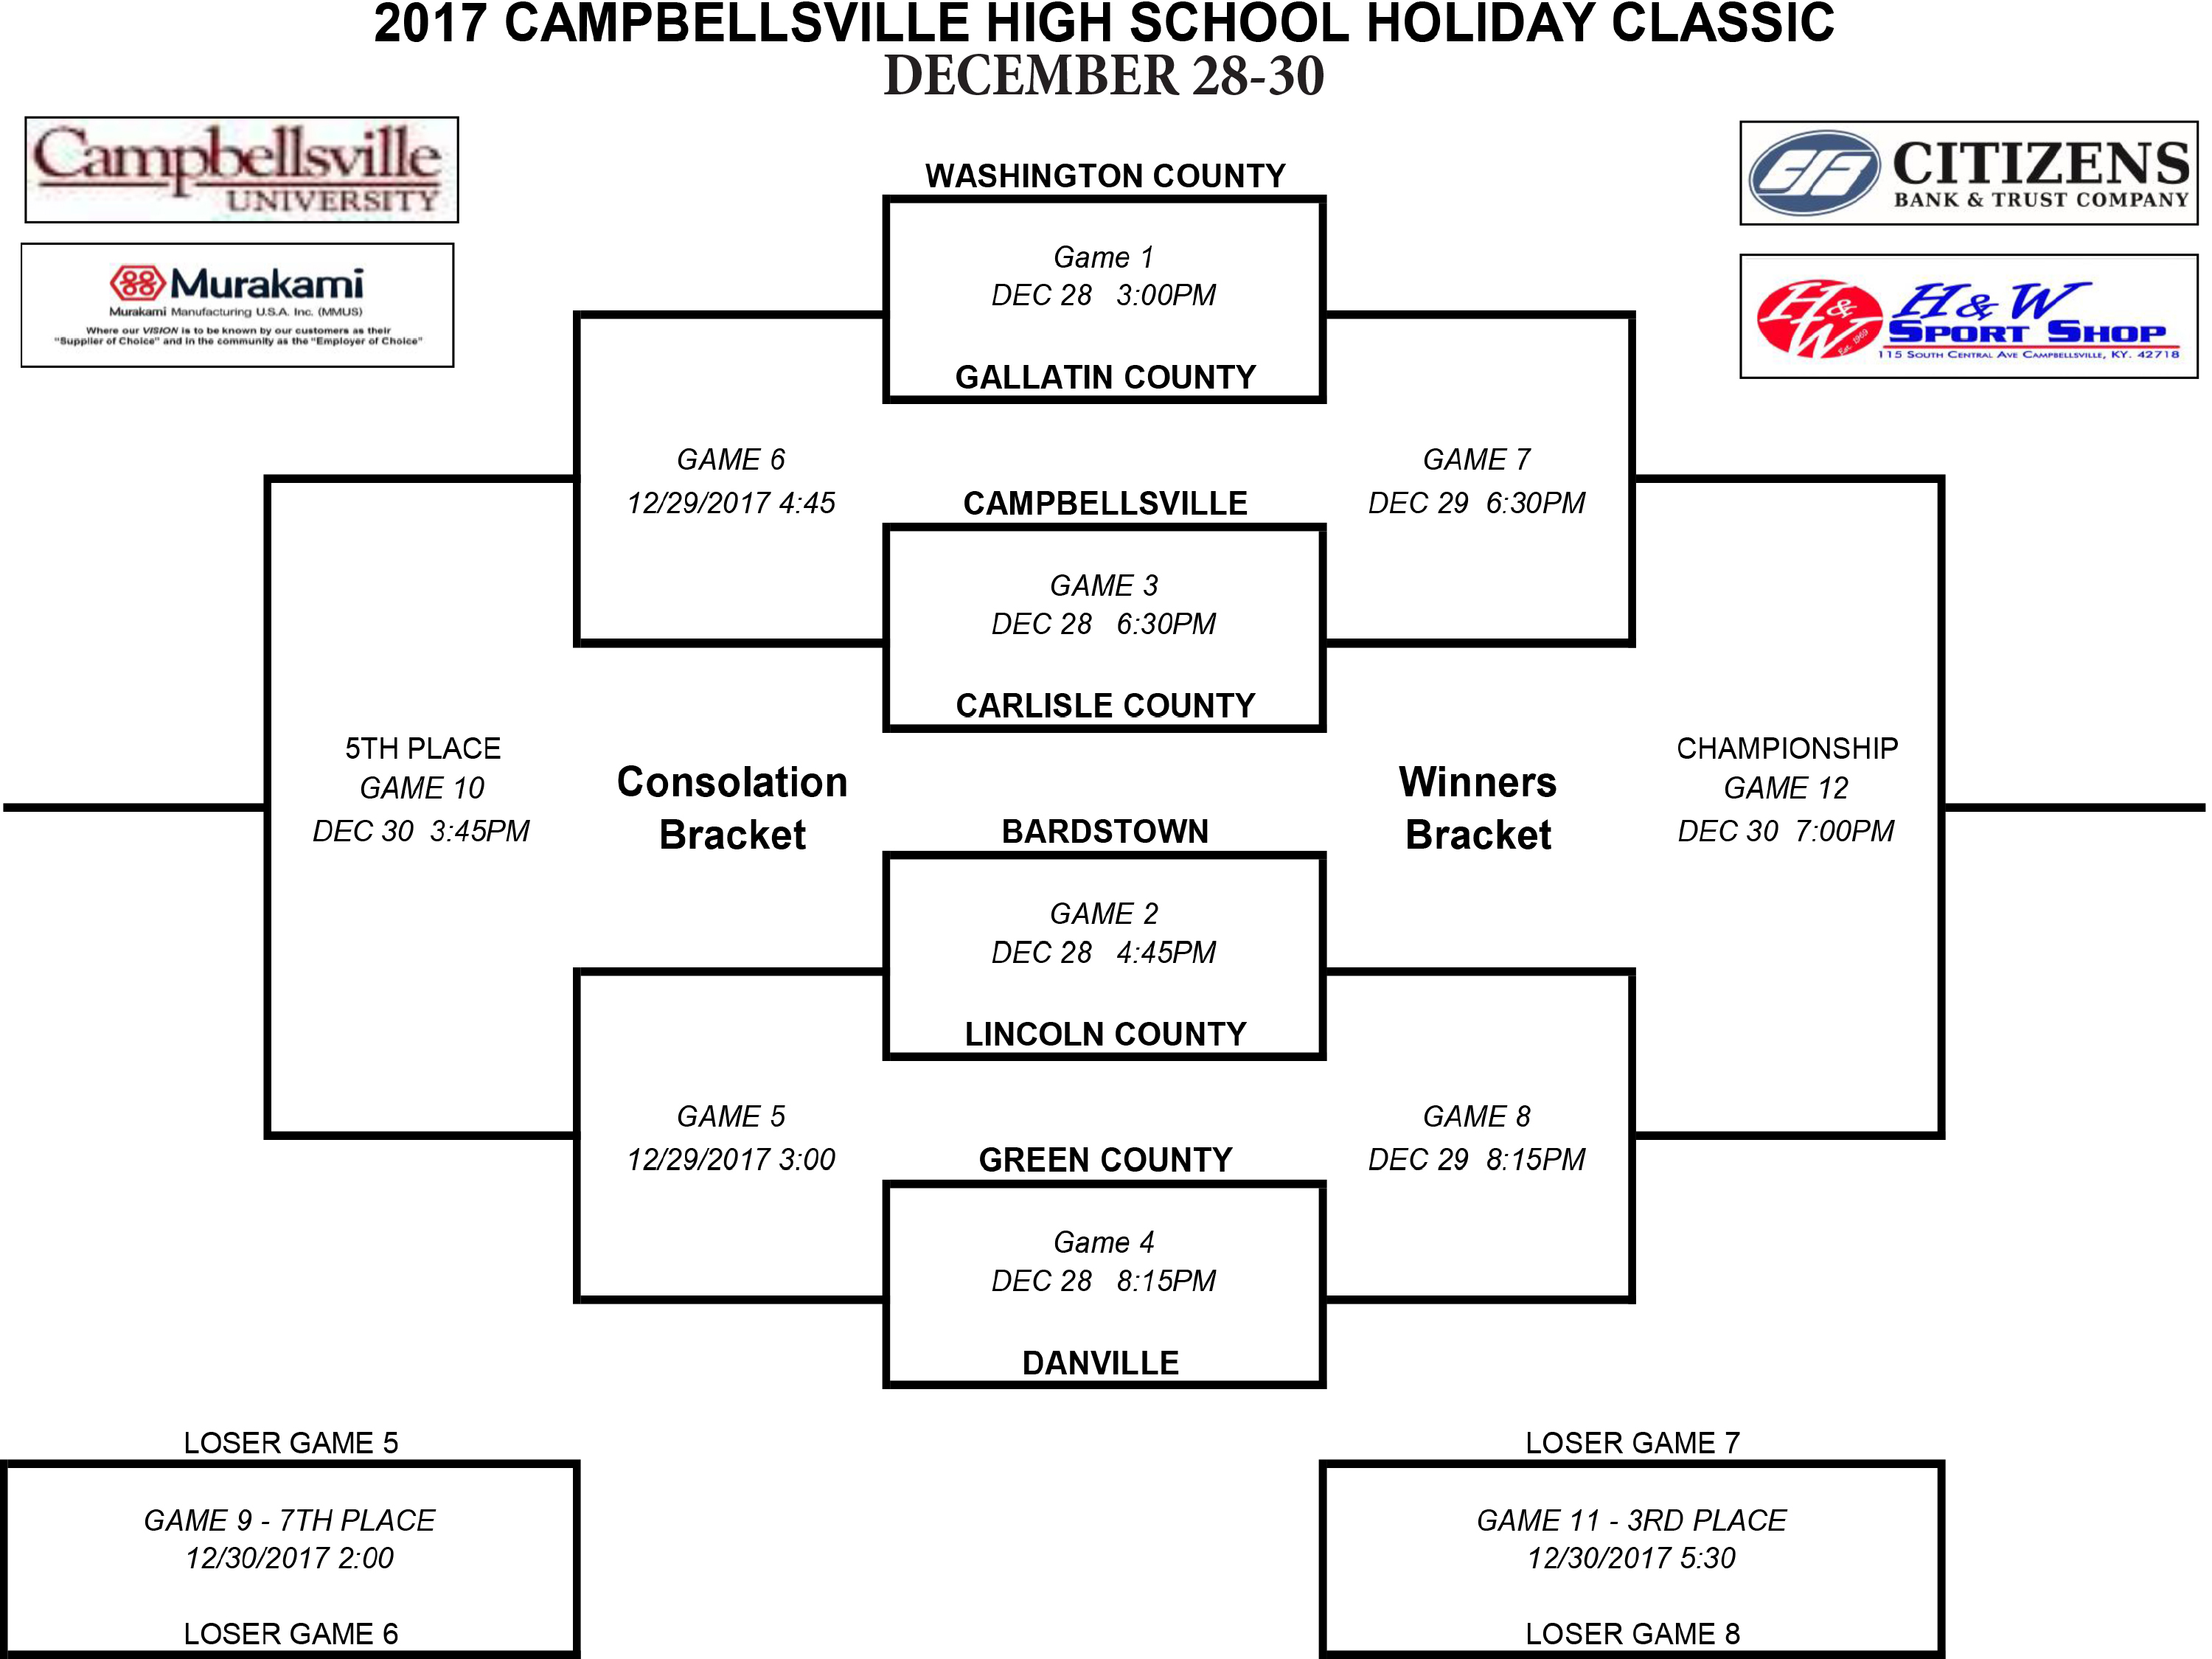 CHS Holiday Classic